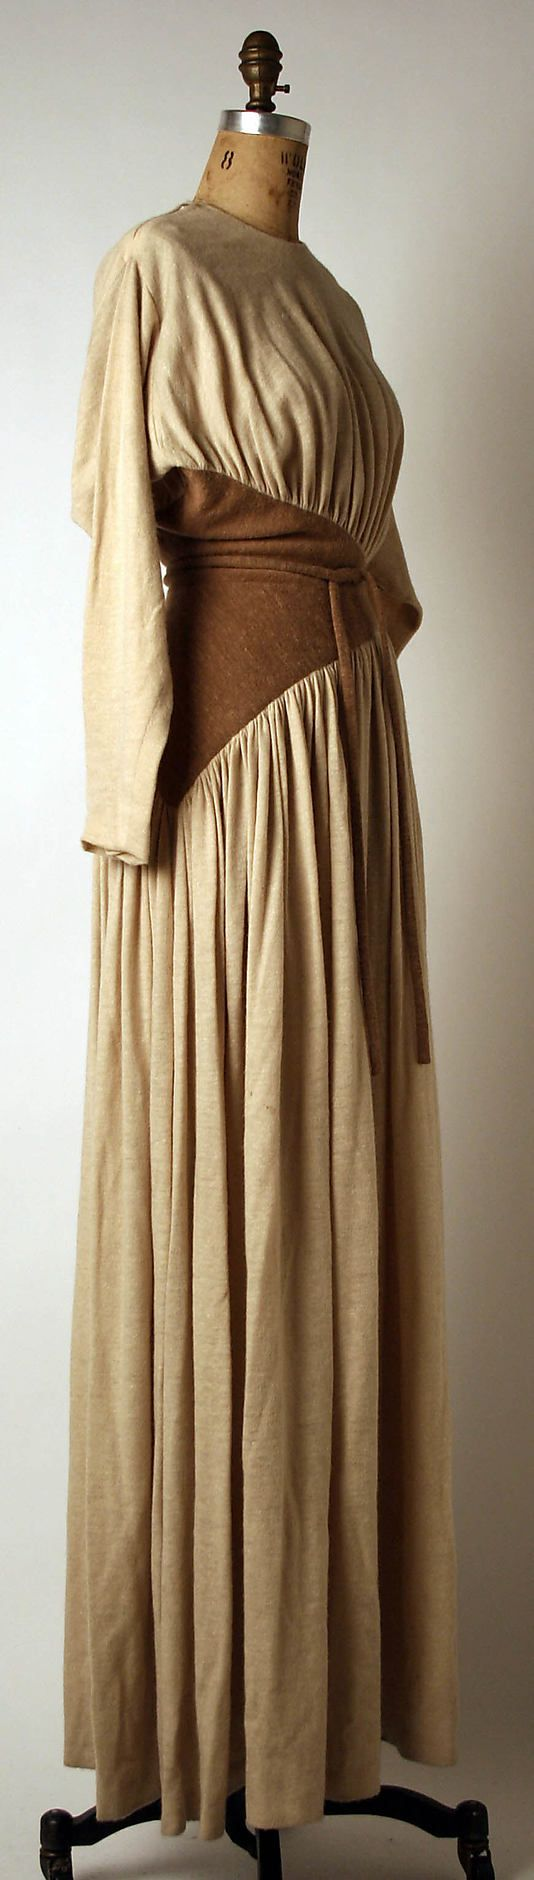 Evening dress Madame Grès (Alix Barton) (French, Paris 1903–1993 Var region) Date: ca. 1975 Culture: French Medium: wool